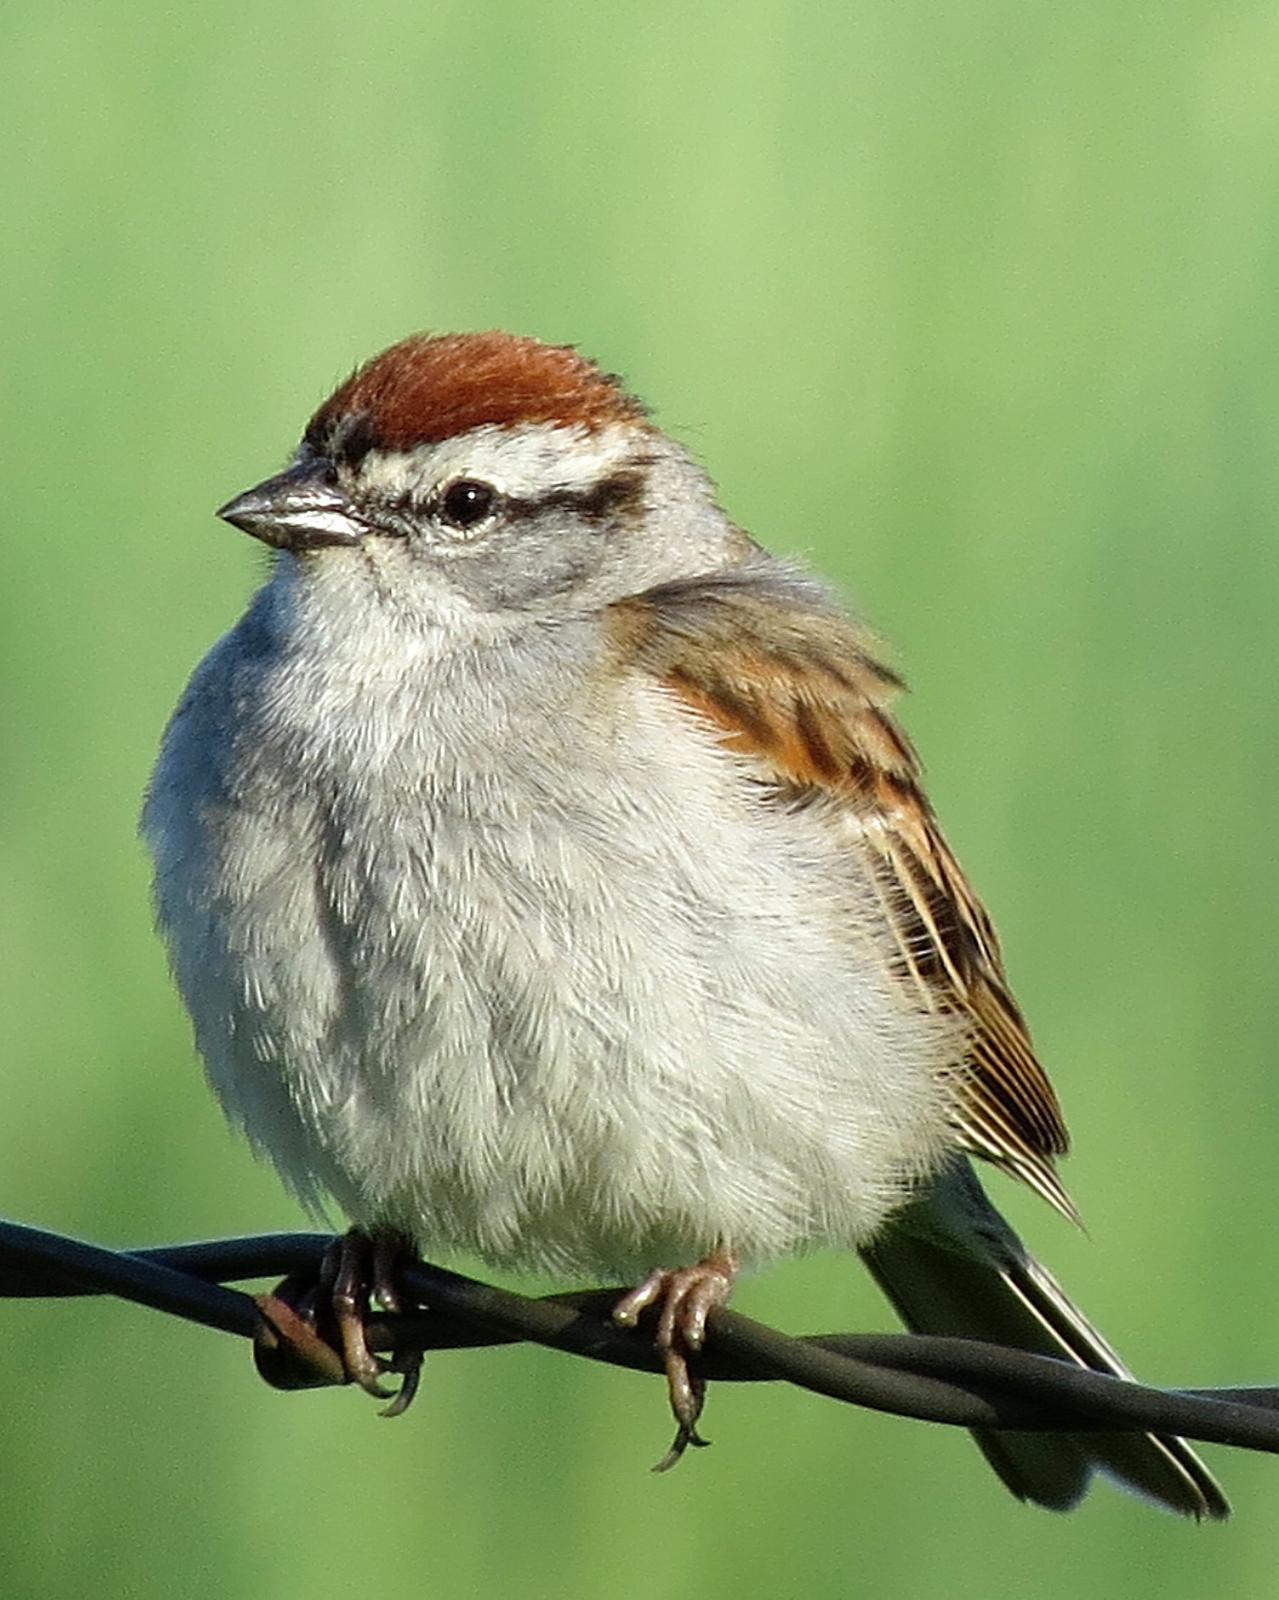 Chipping Sparrow Photo by Kelly Preheim